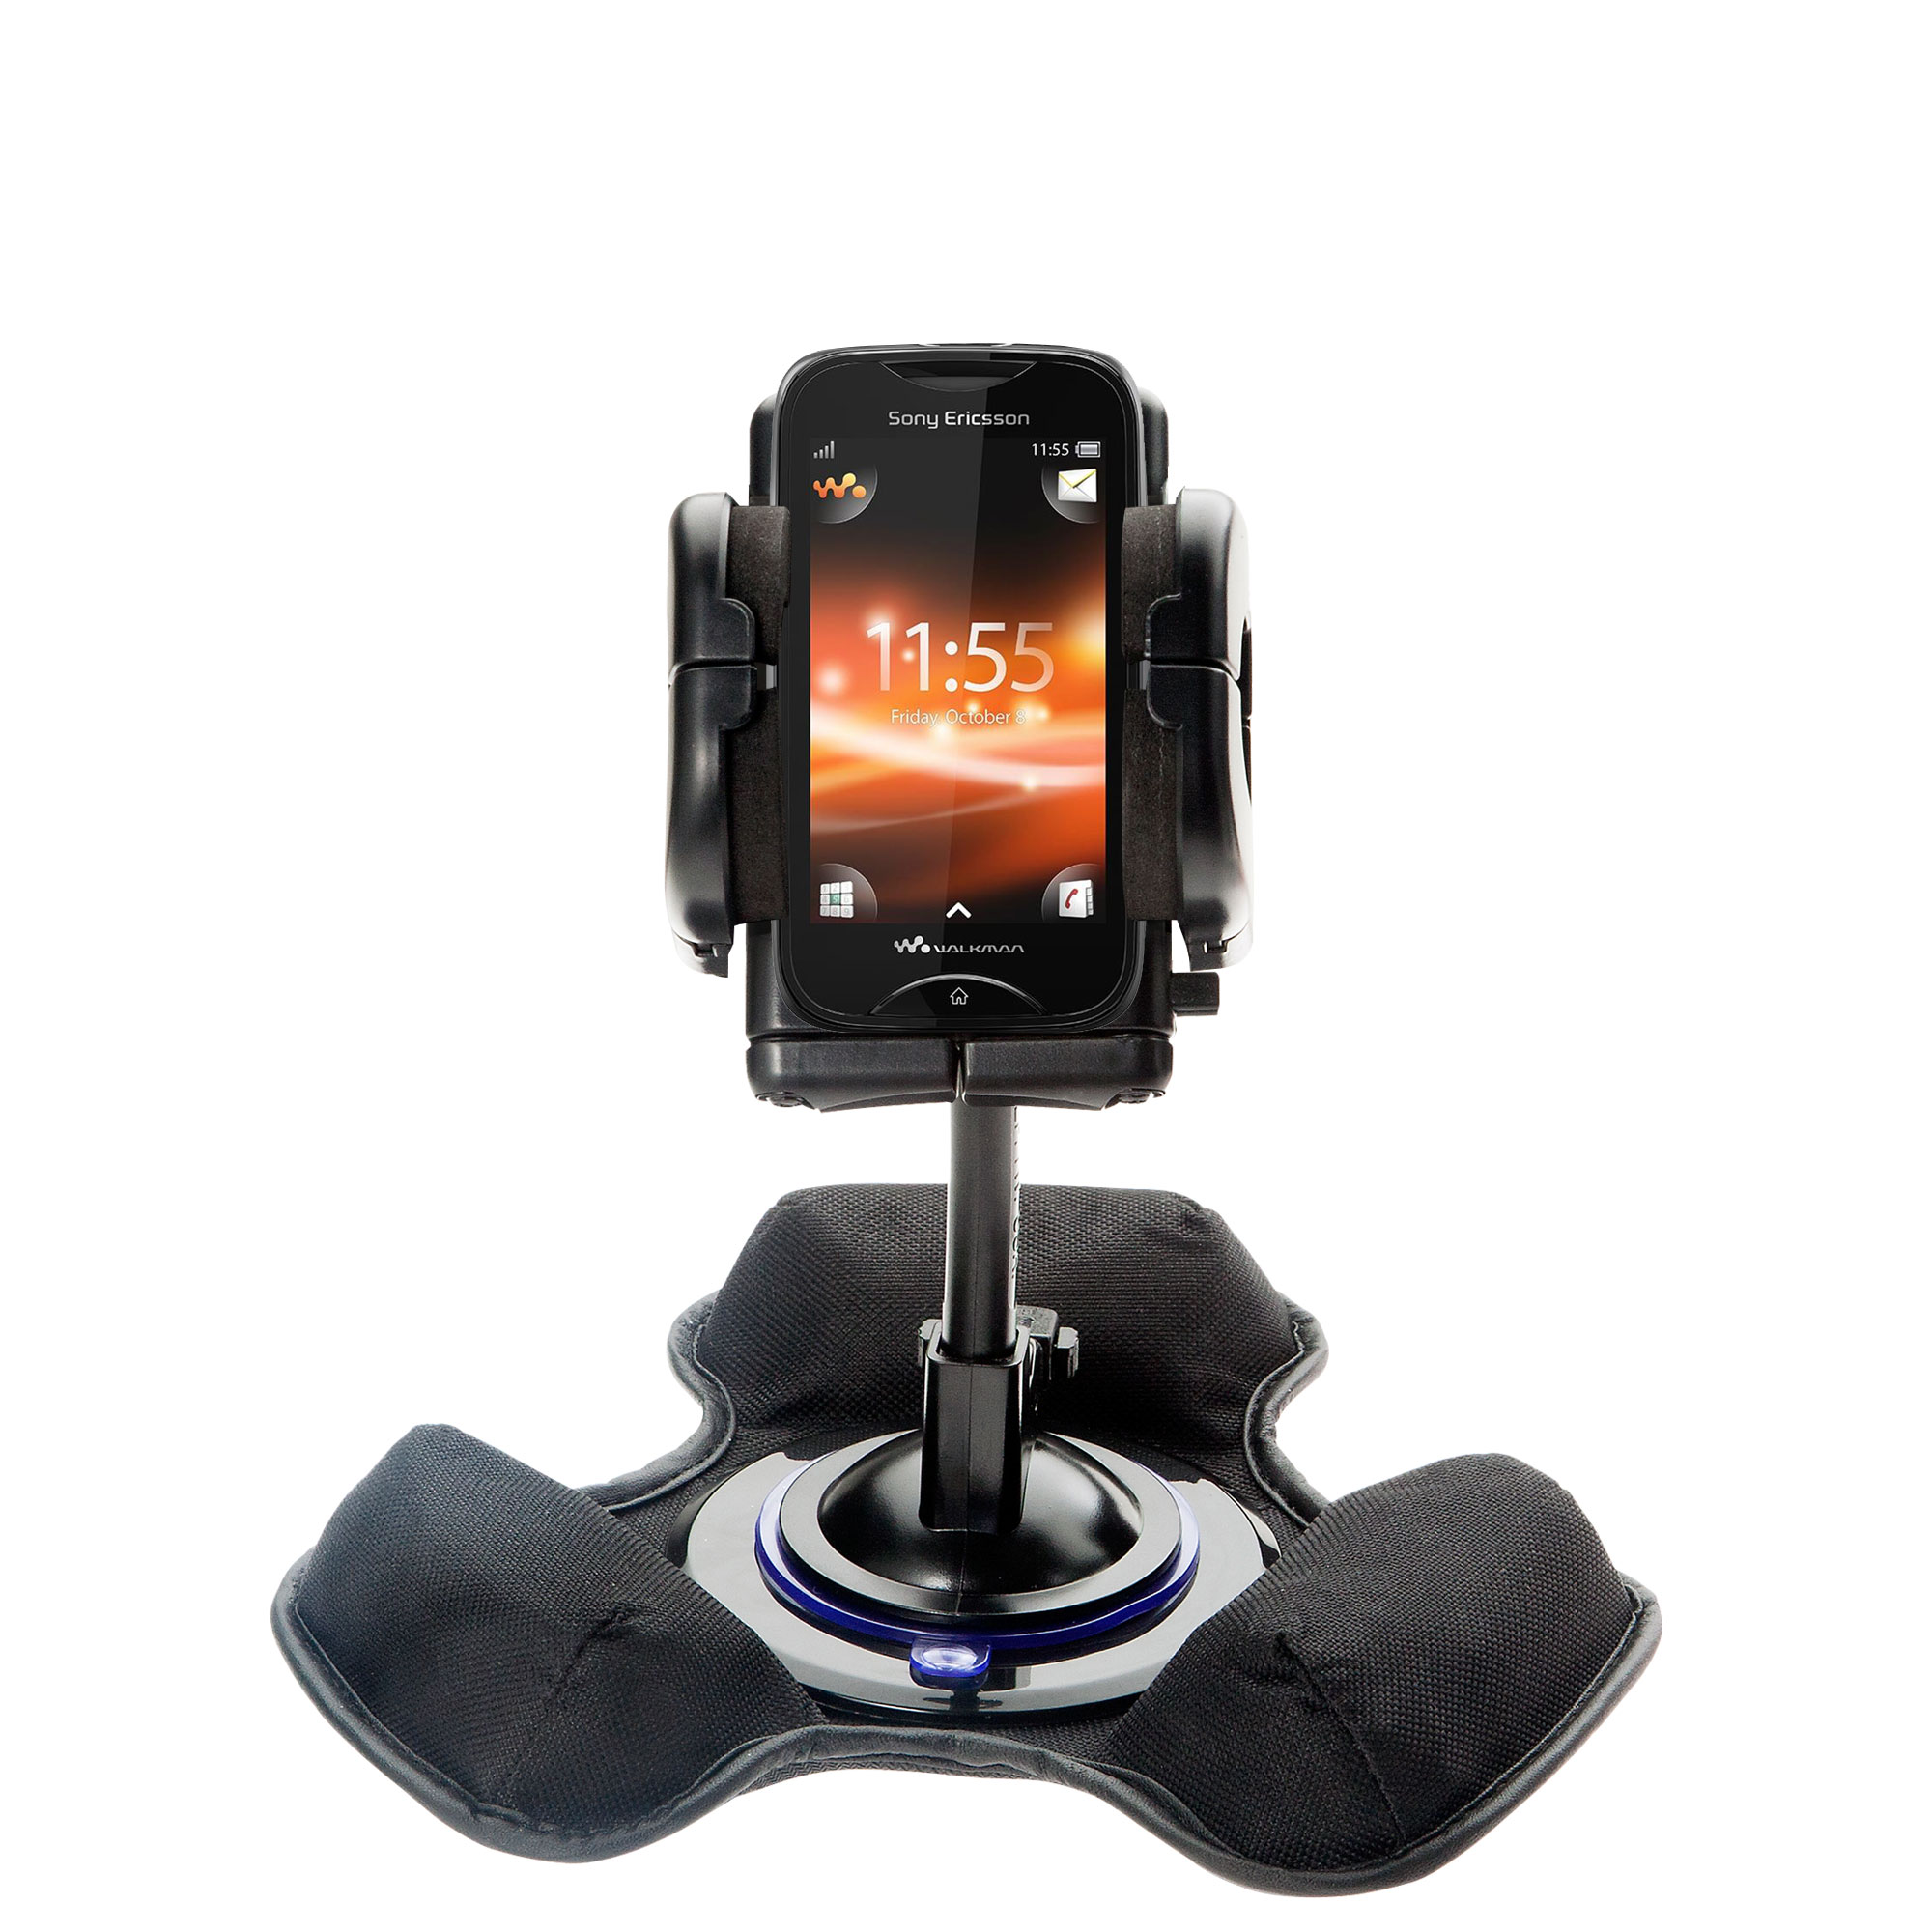 Car / Truck Vehicle Holder Mounting System for Sony Ericsson LT15i Includes Unique Flexible Windshield Suction and Universal Dashboard Mount Options